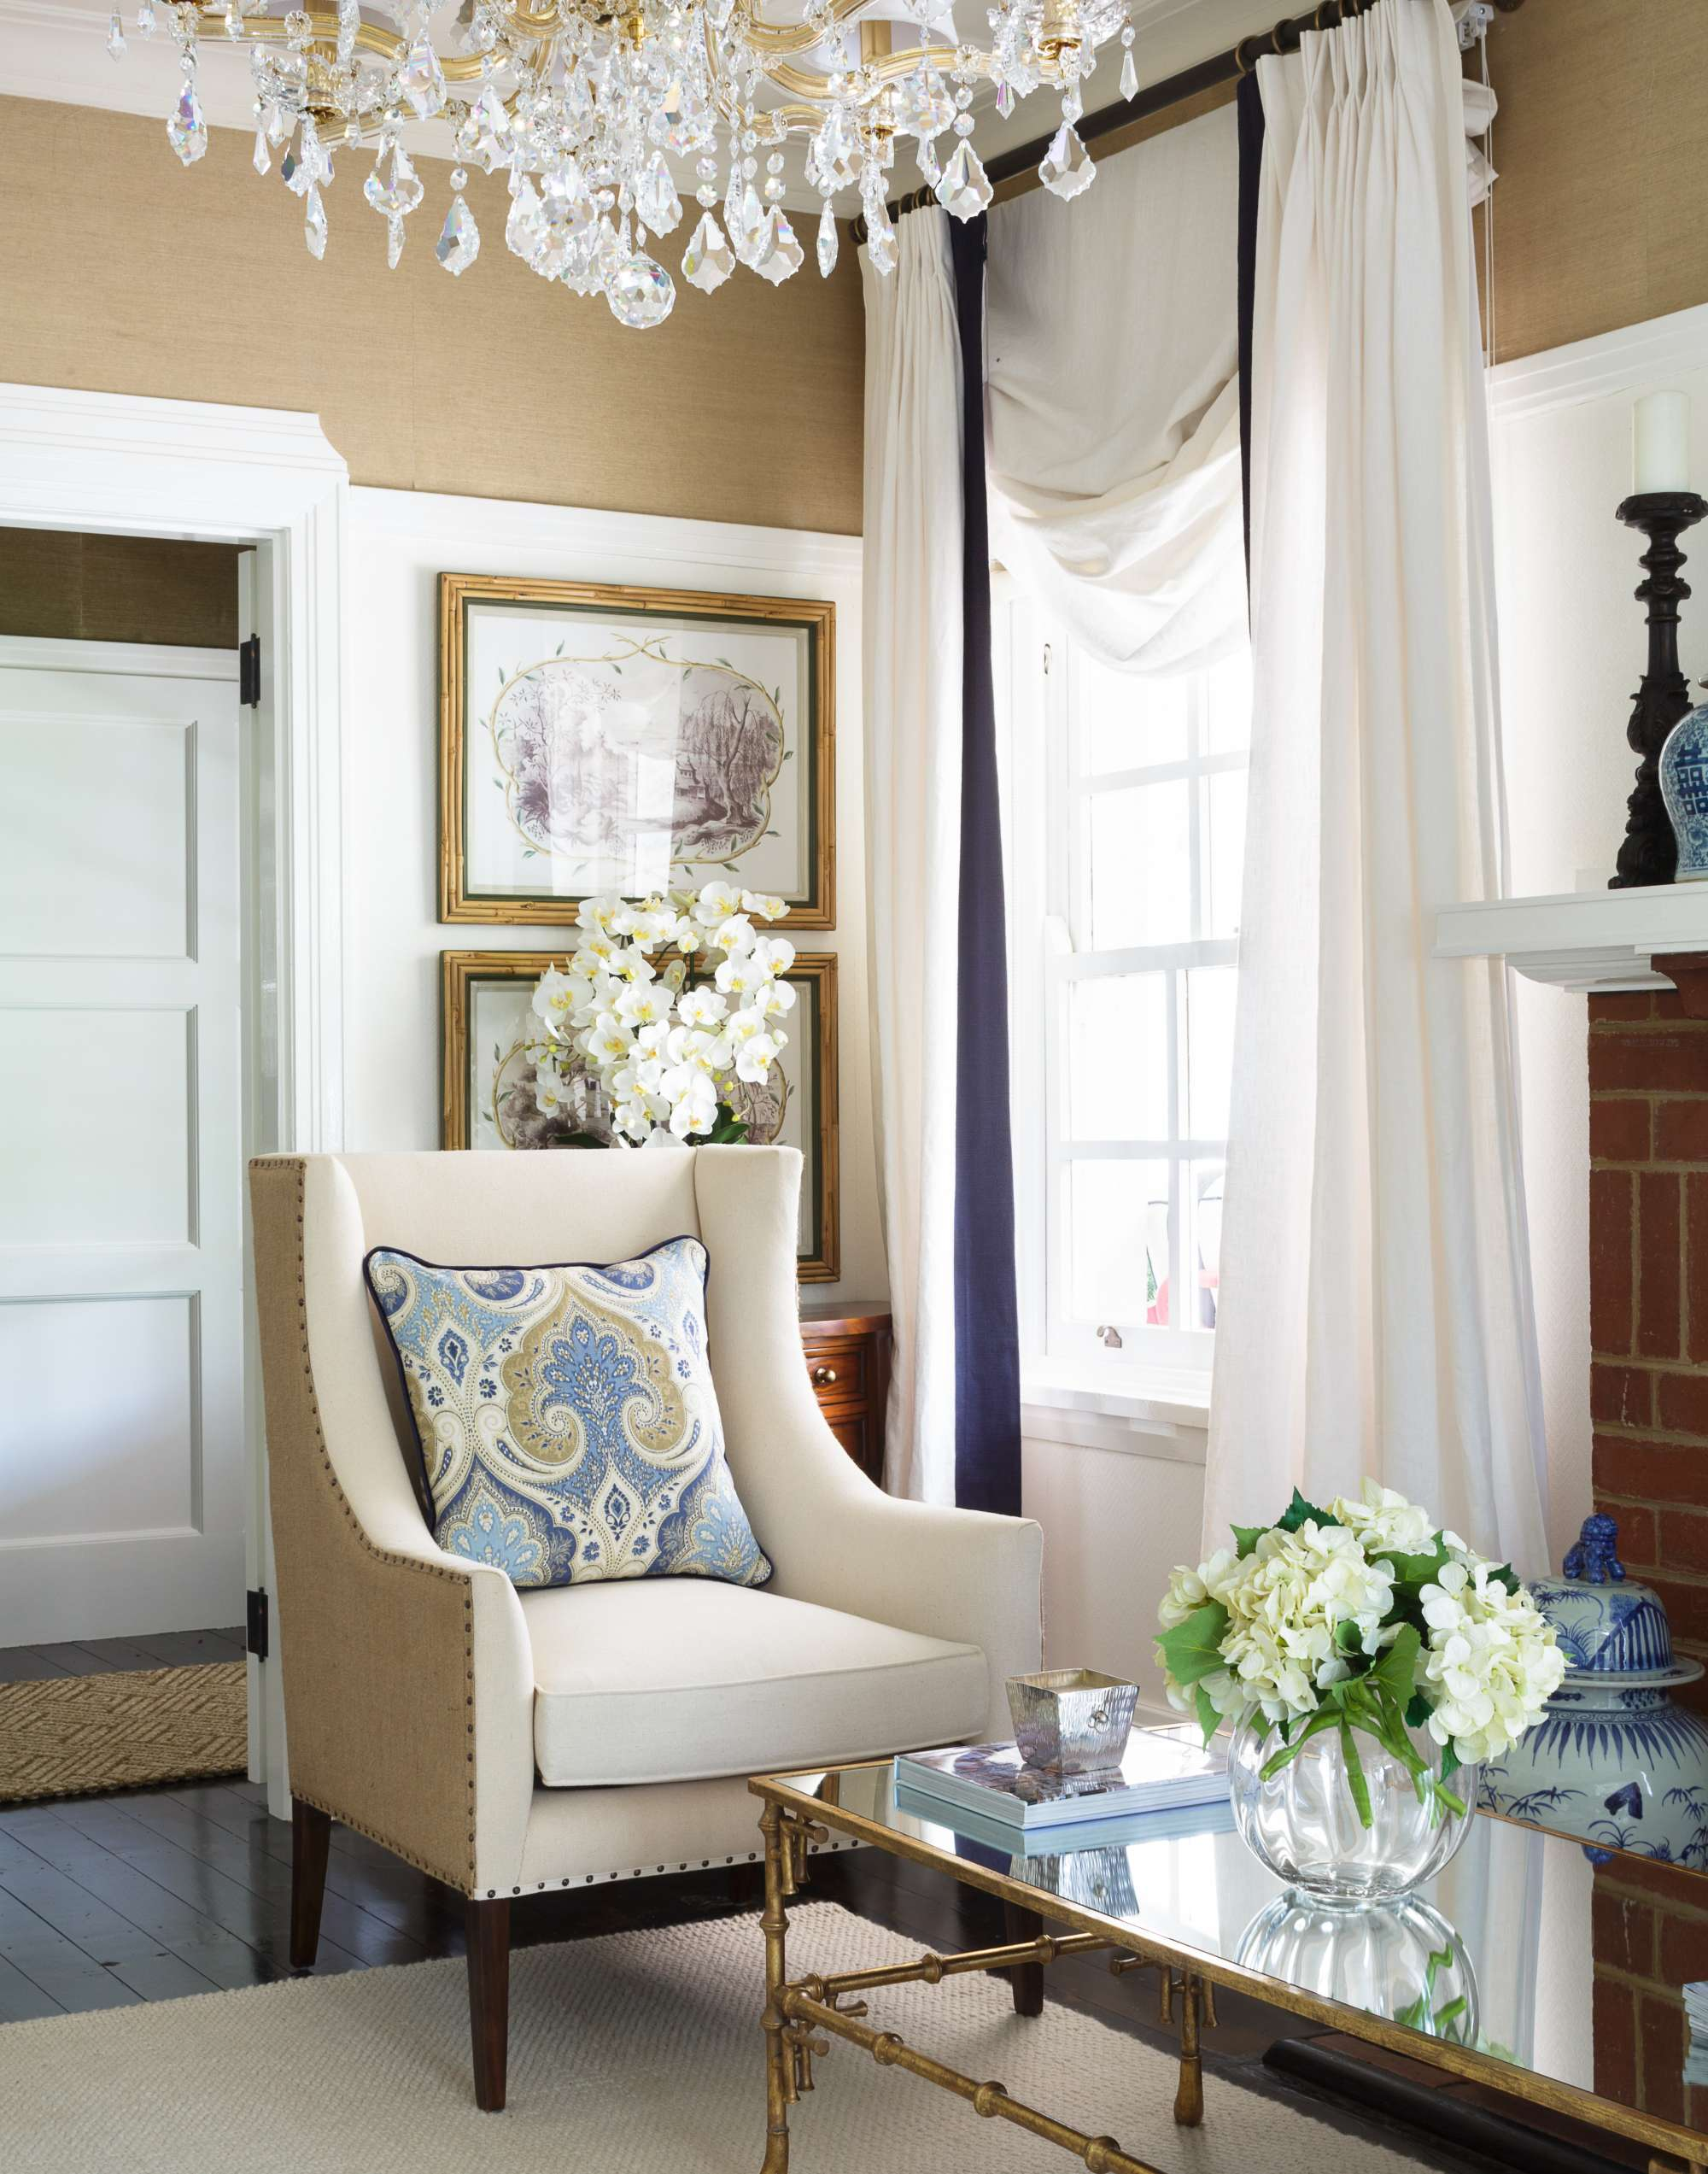 canberra hamptons inspired interior design white drapery wingback chair chandelier